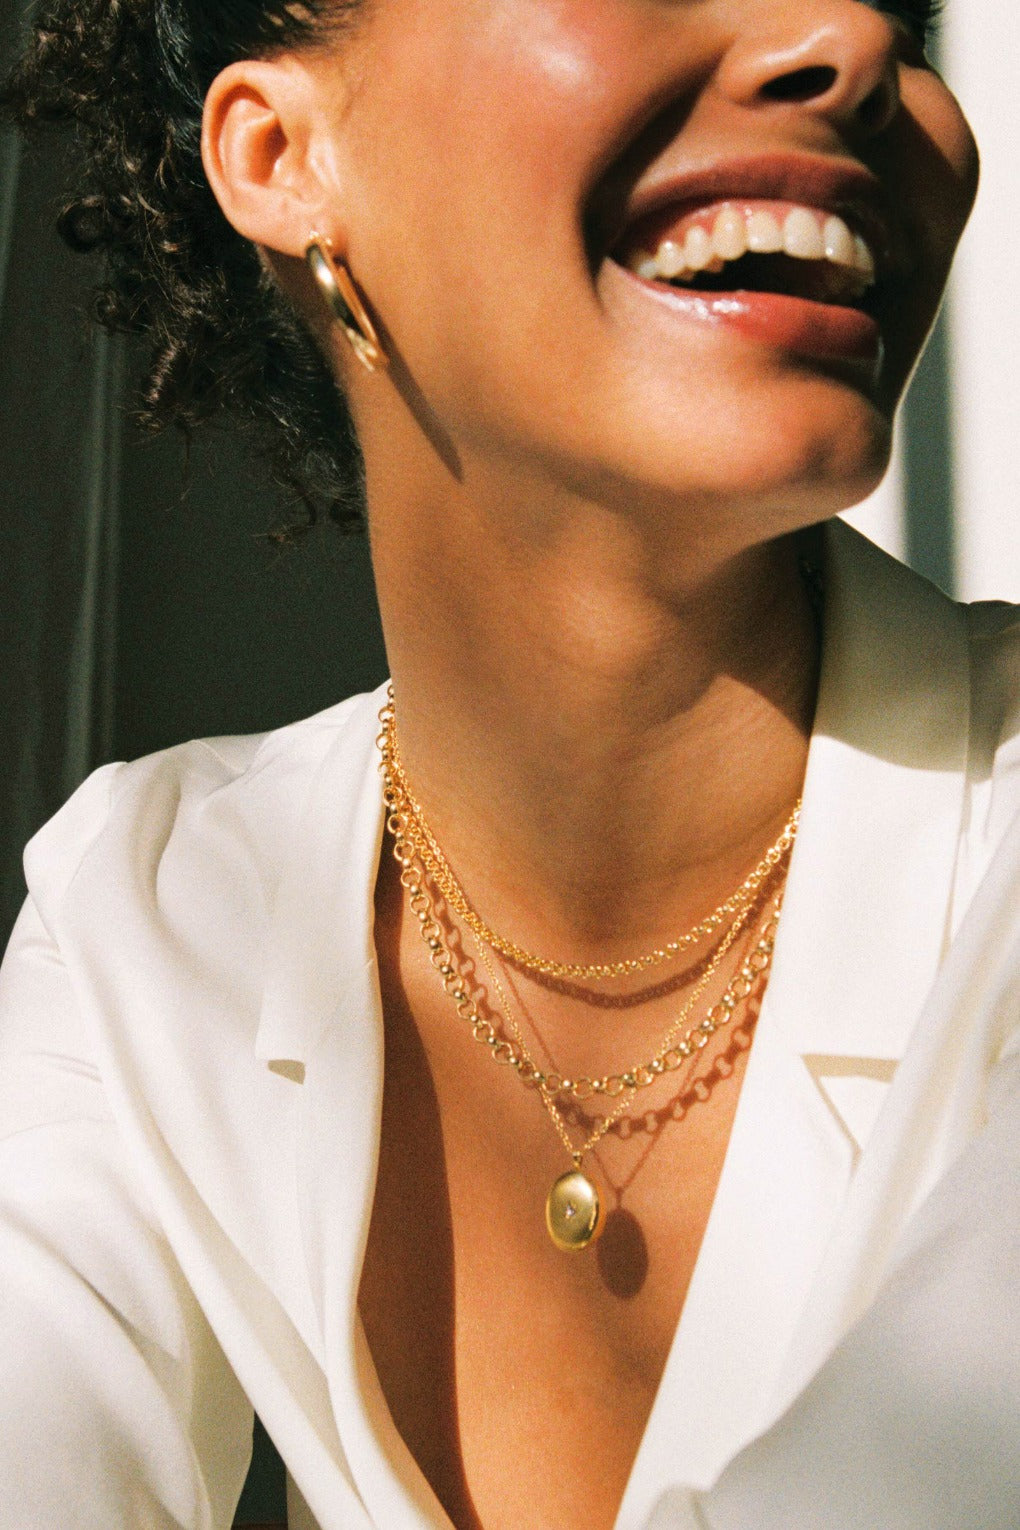 model wearing a set of matching golden necklaces